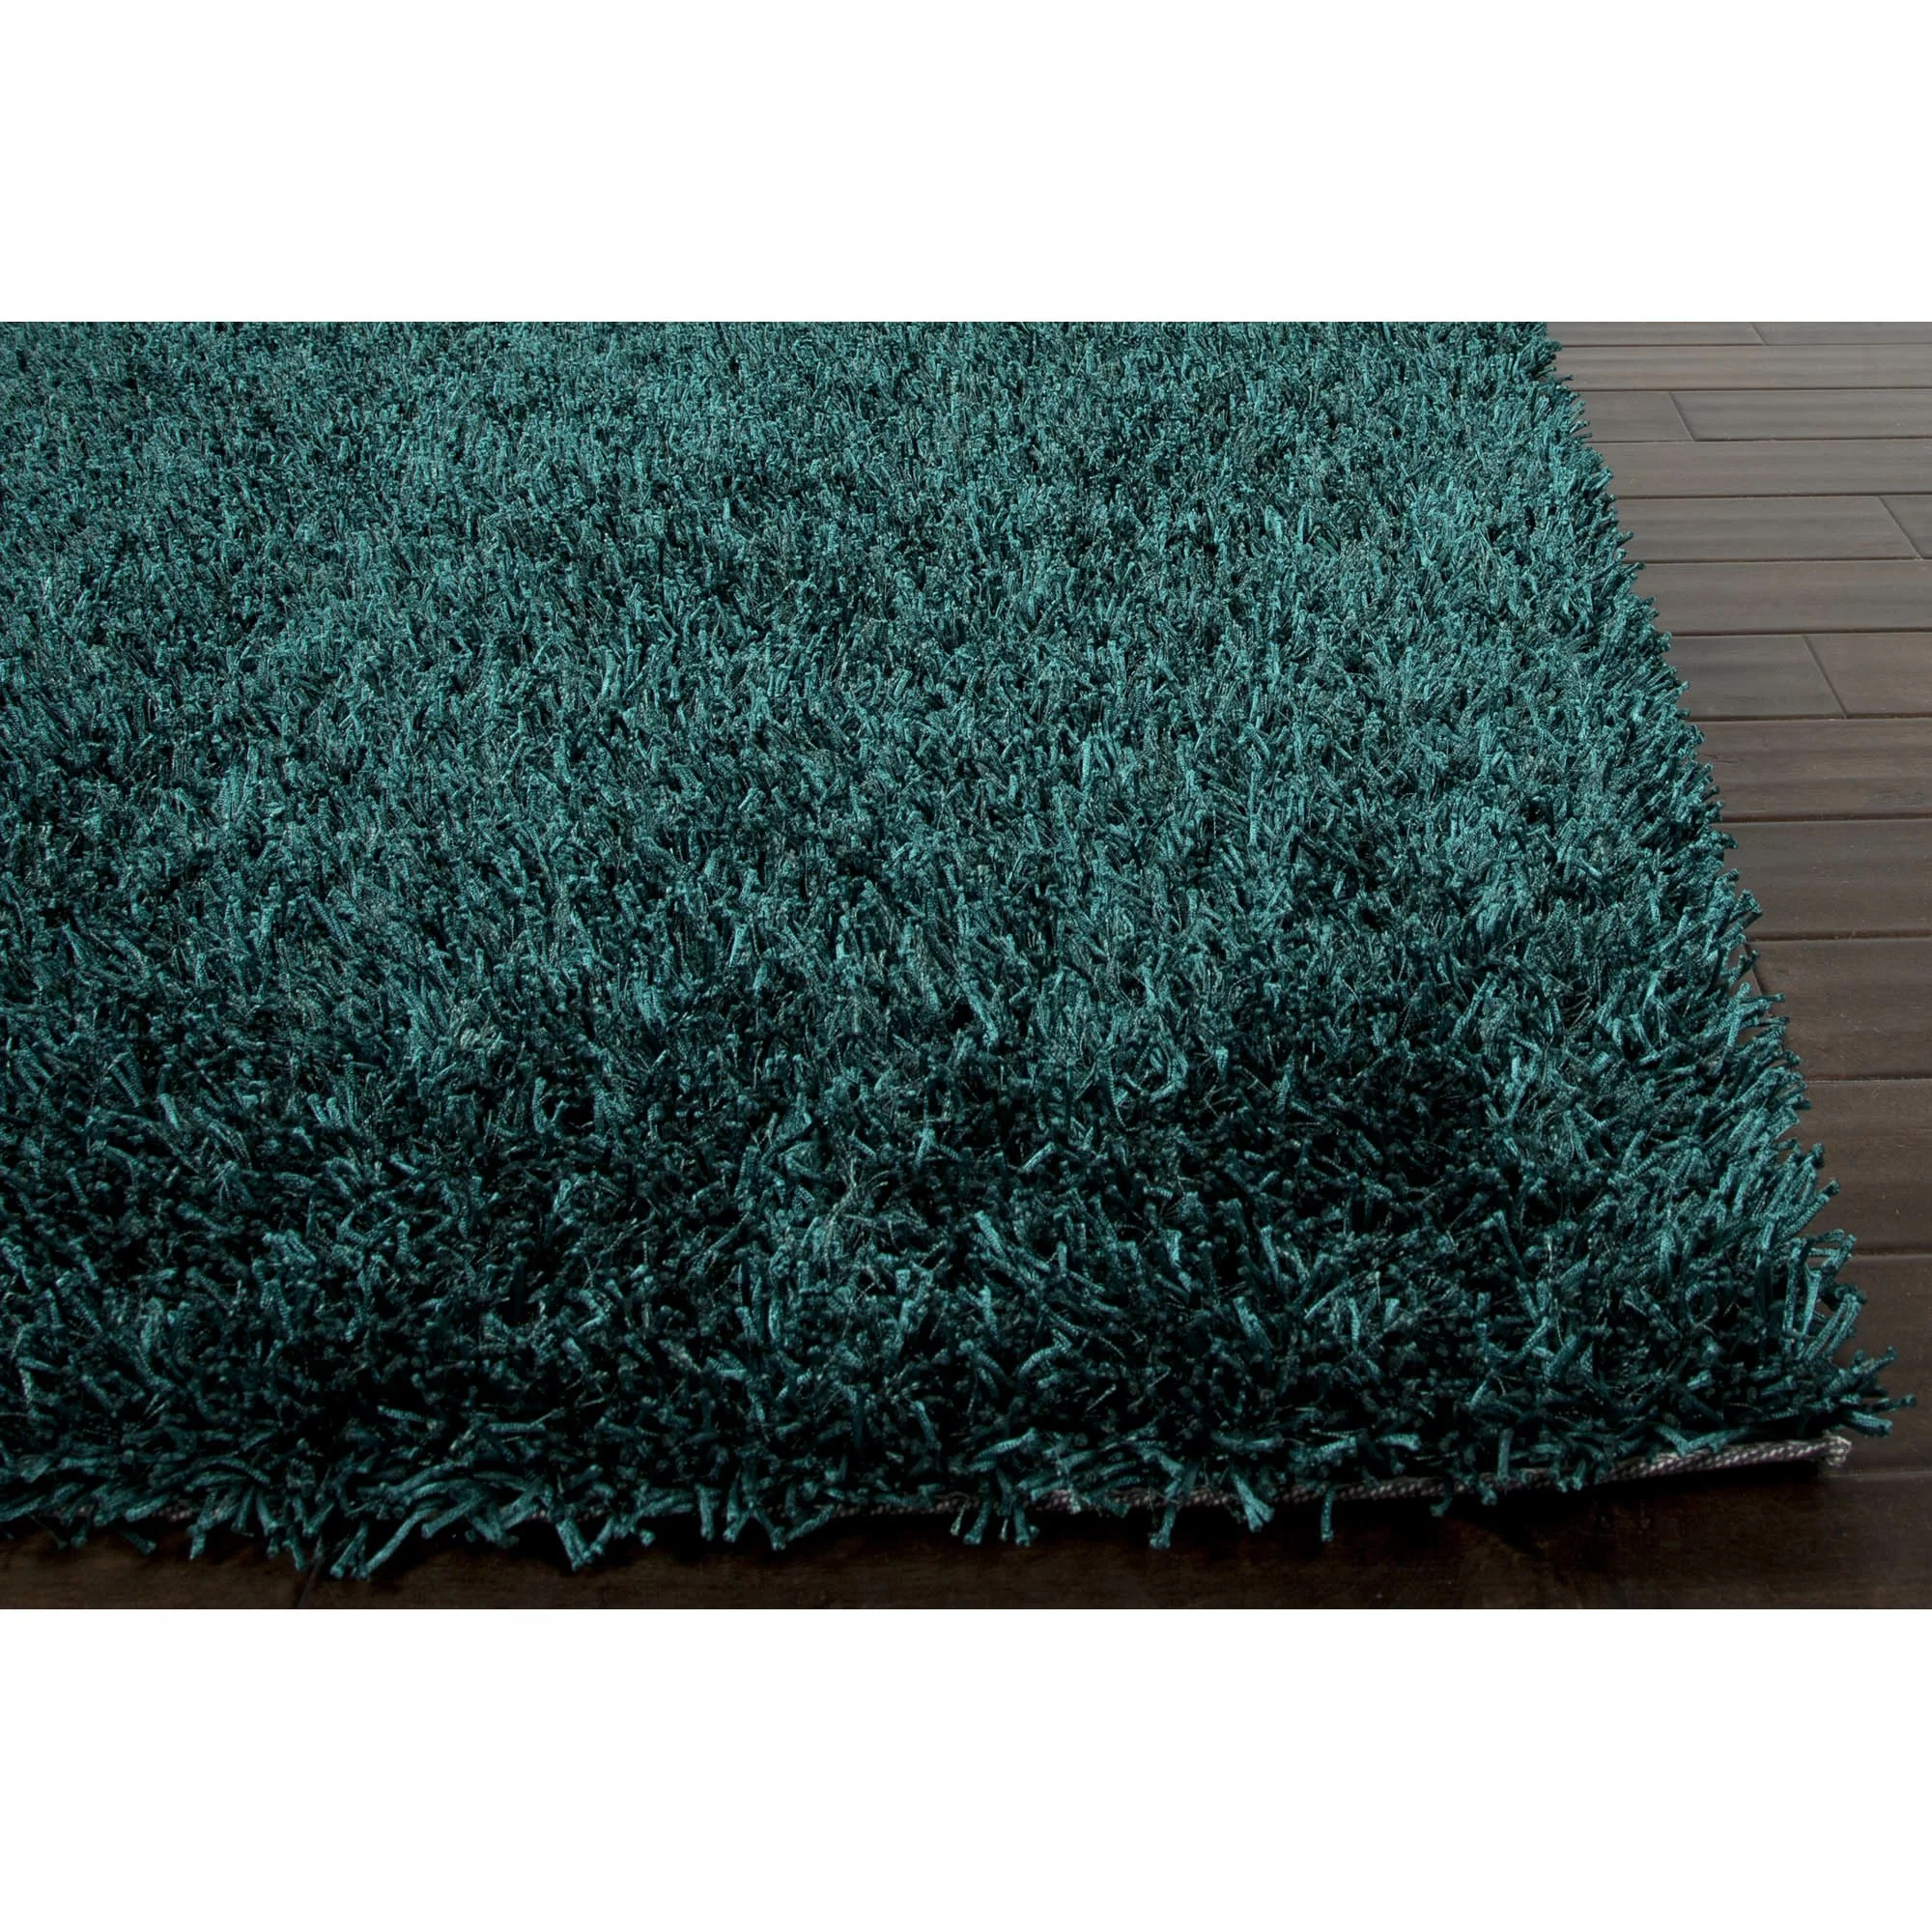 Blue Shag Rug Jaipurliving Flux Teal Blue Shag Area Rug And Reviews Wayfair